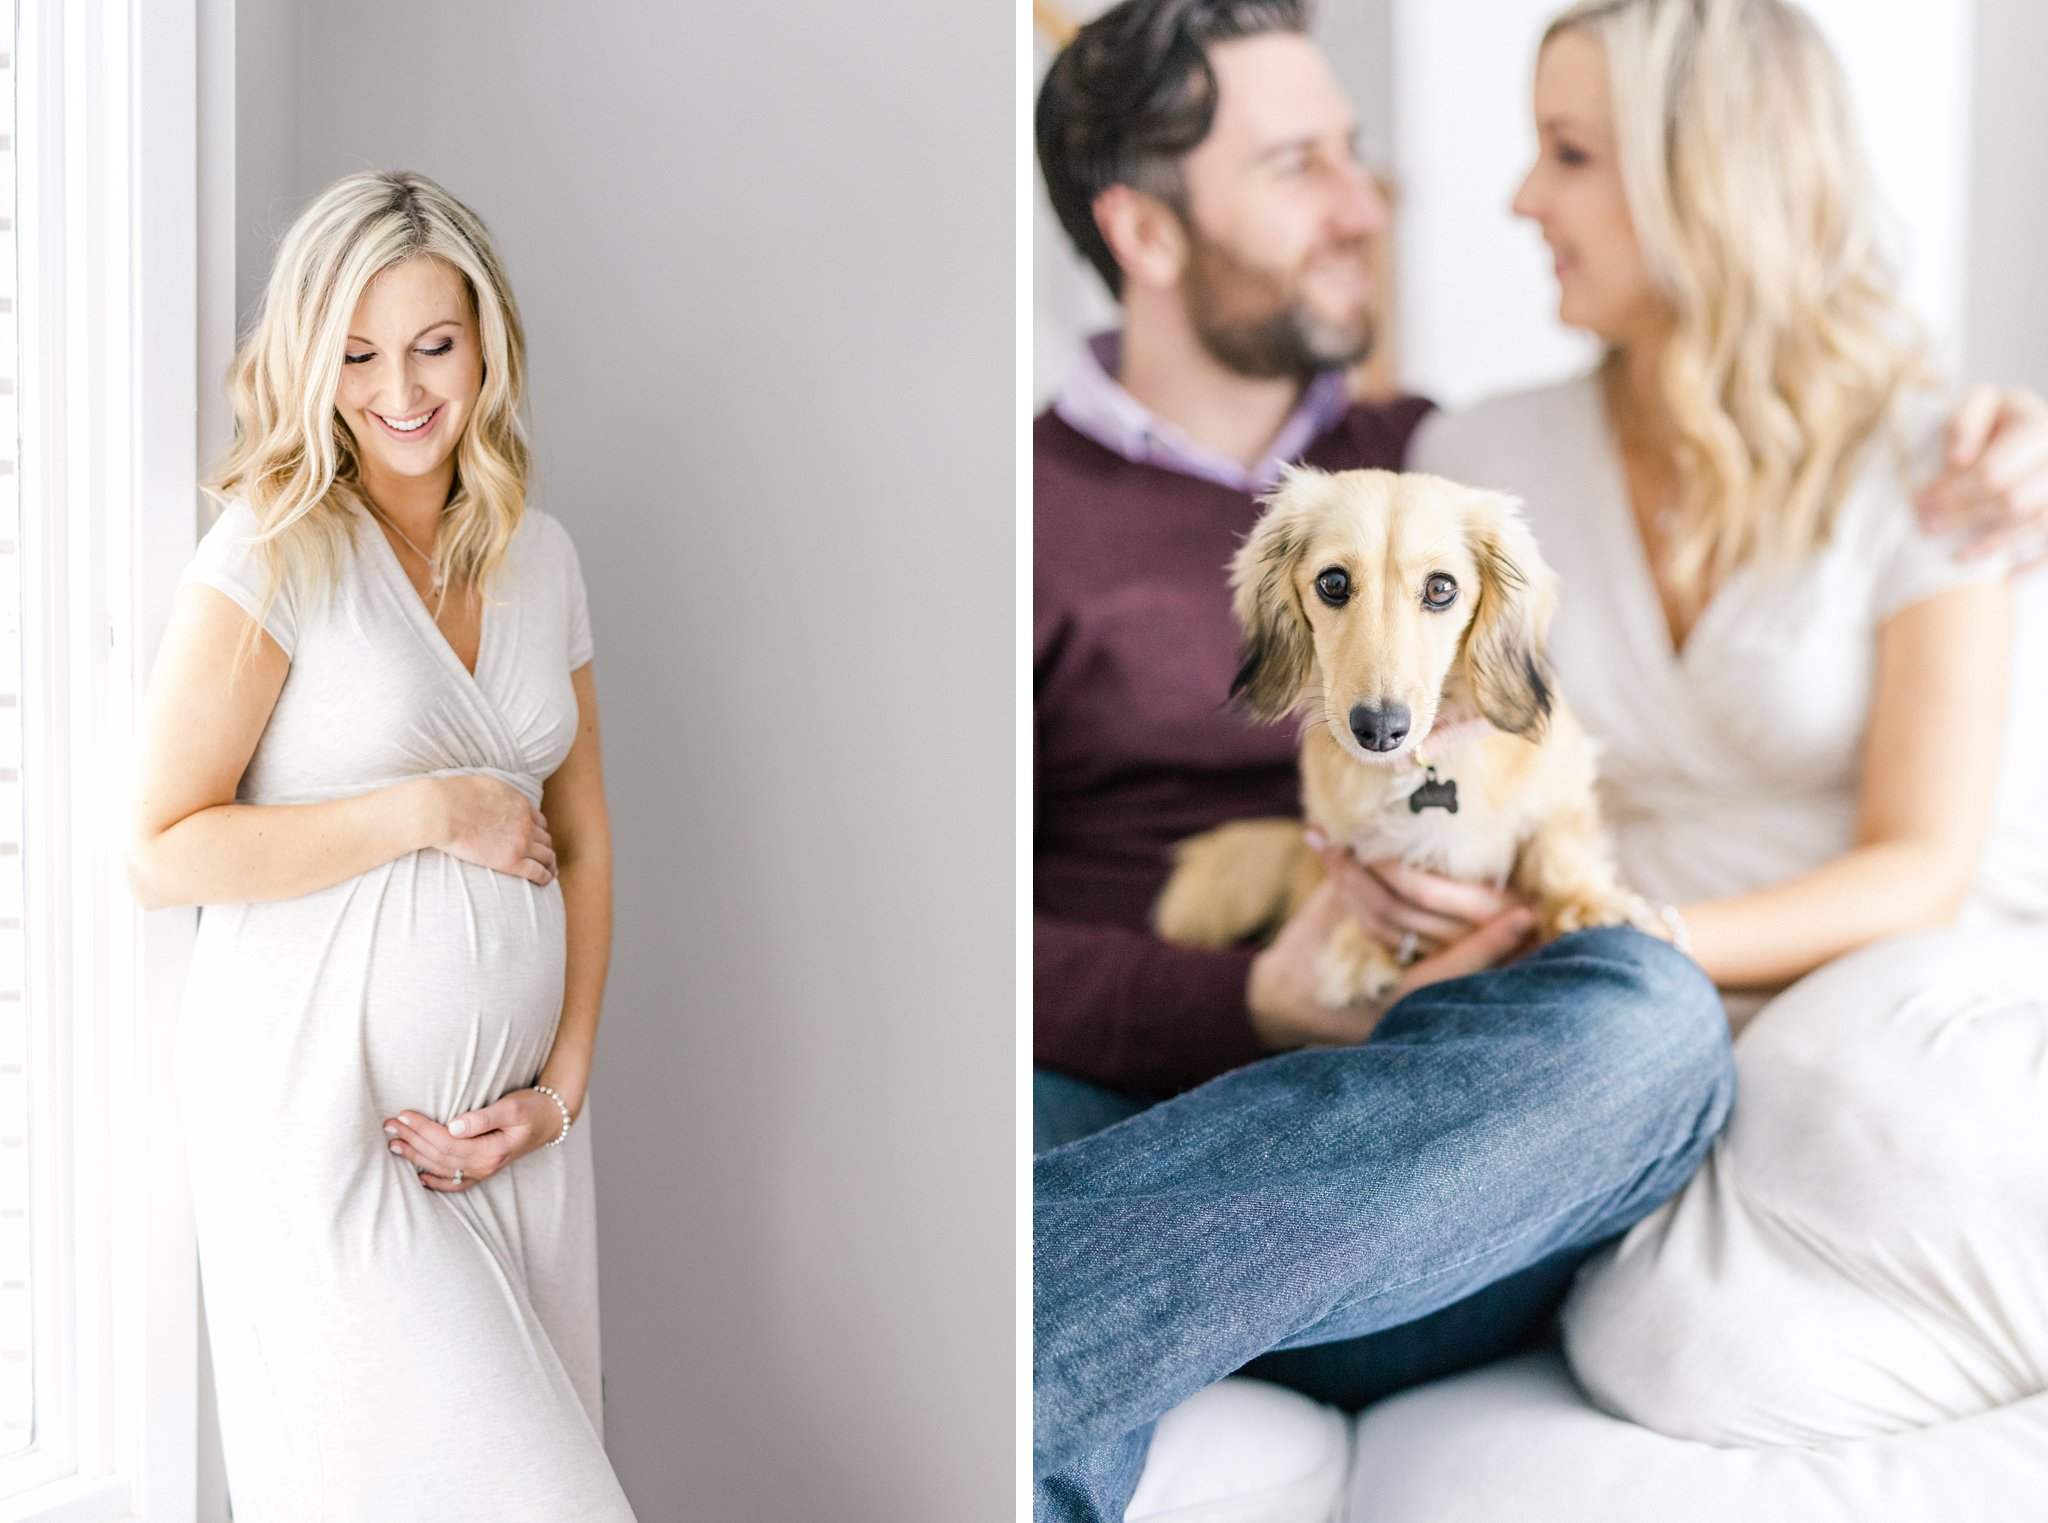 Dog cuddles lifestyle maternity photos Ottawa